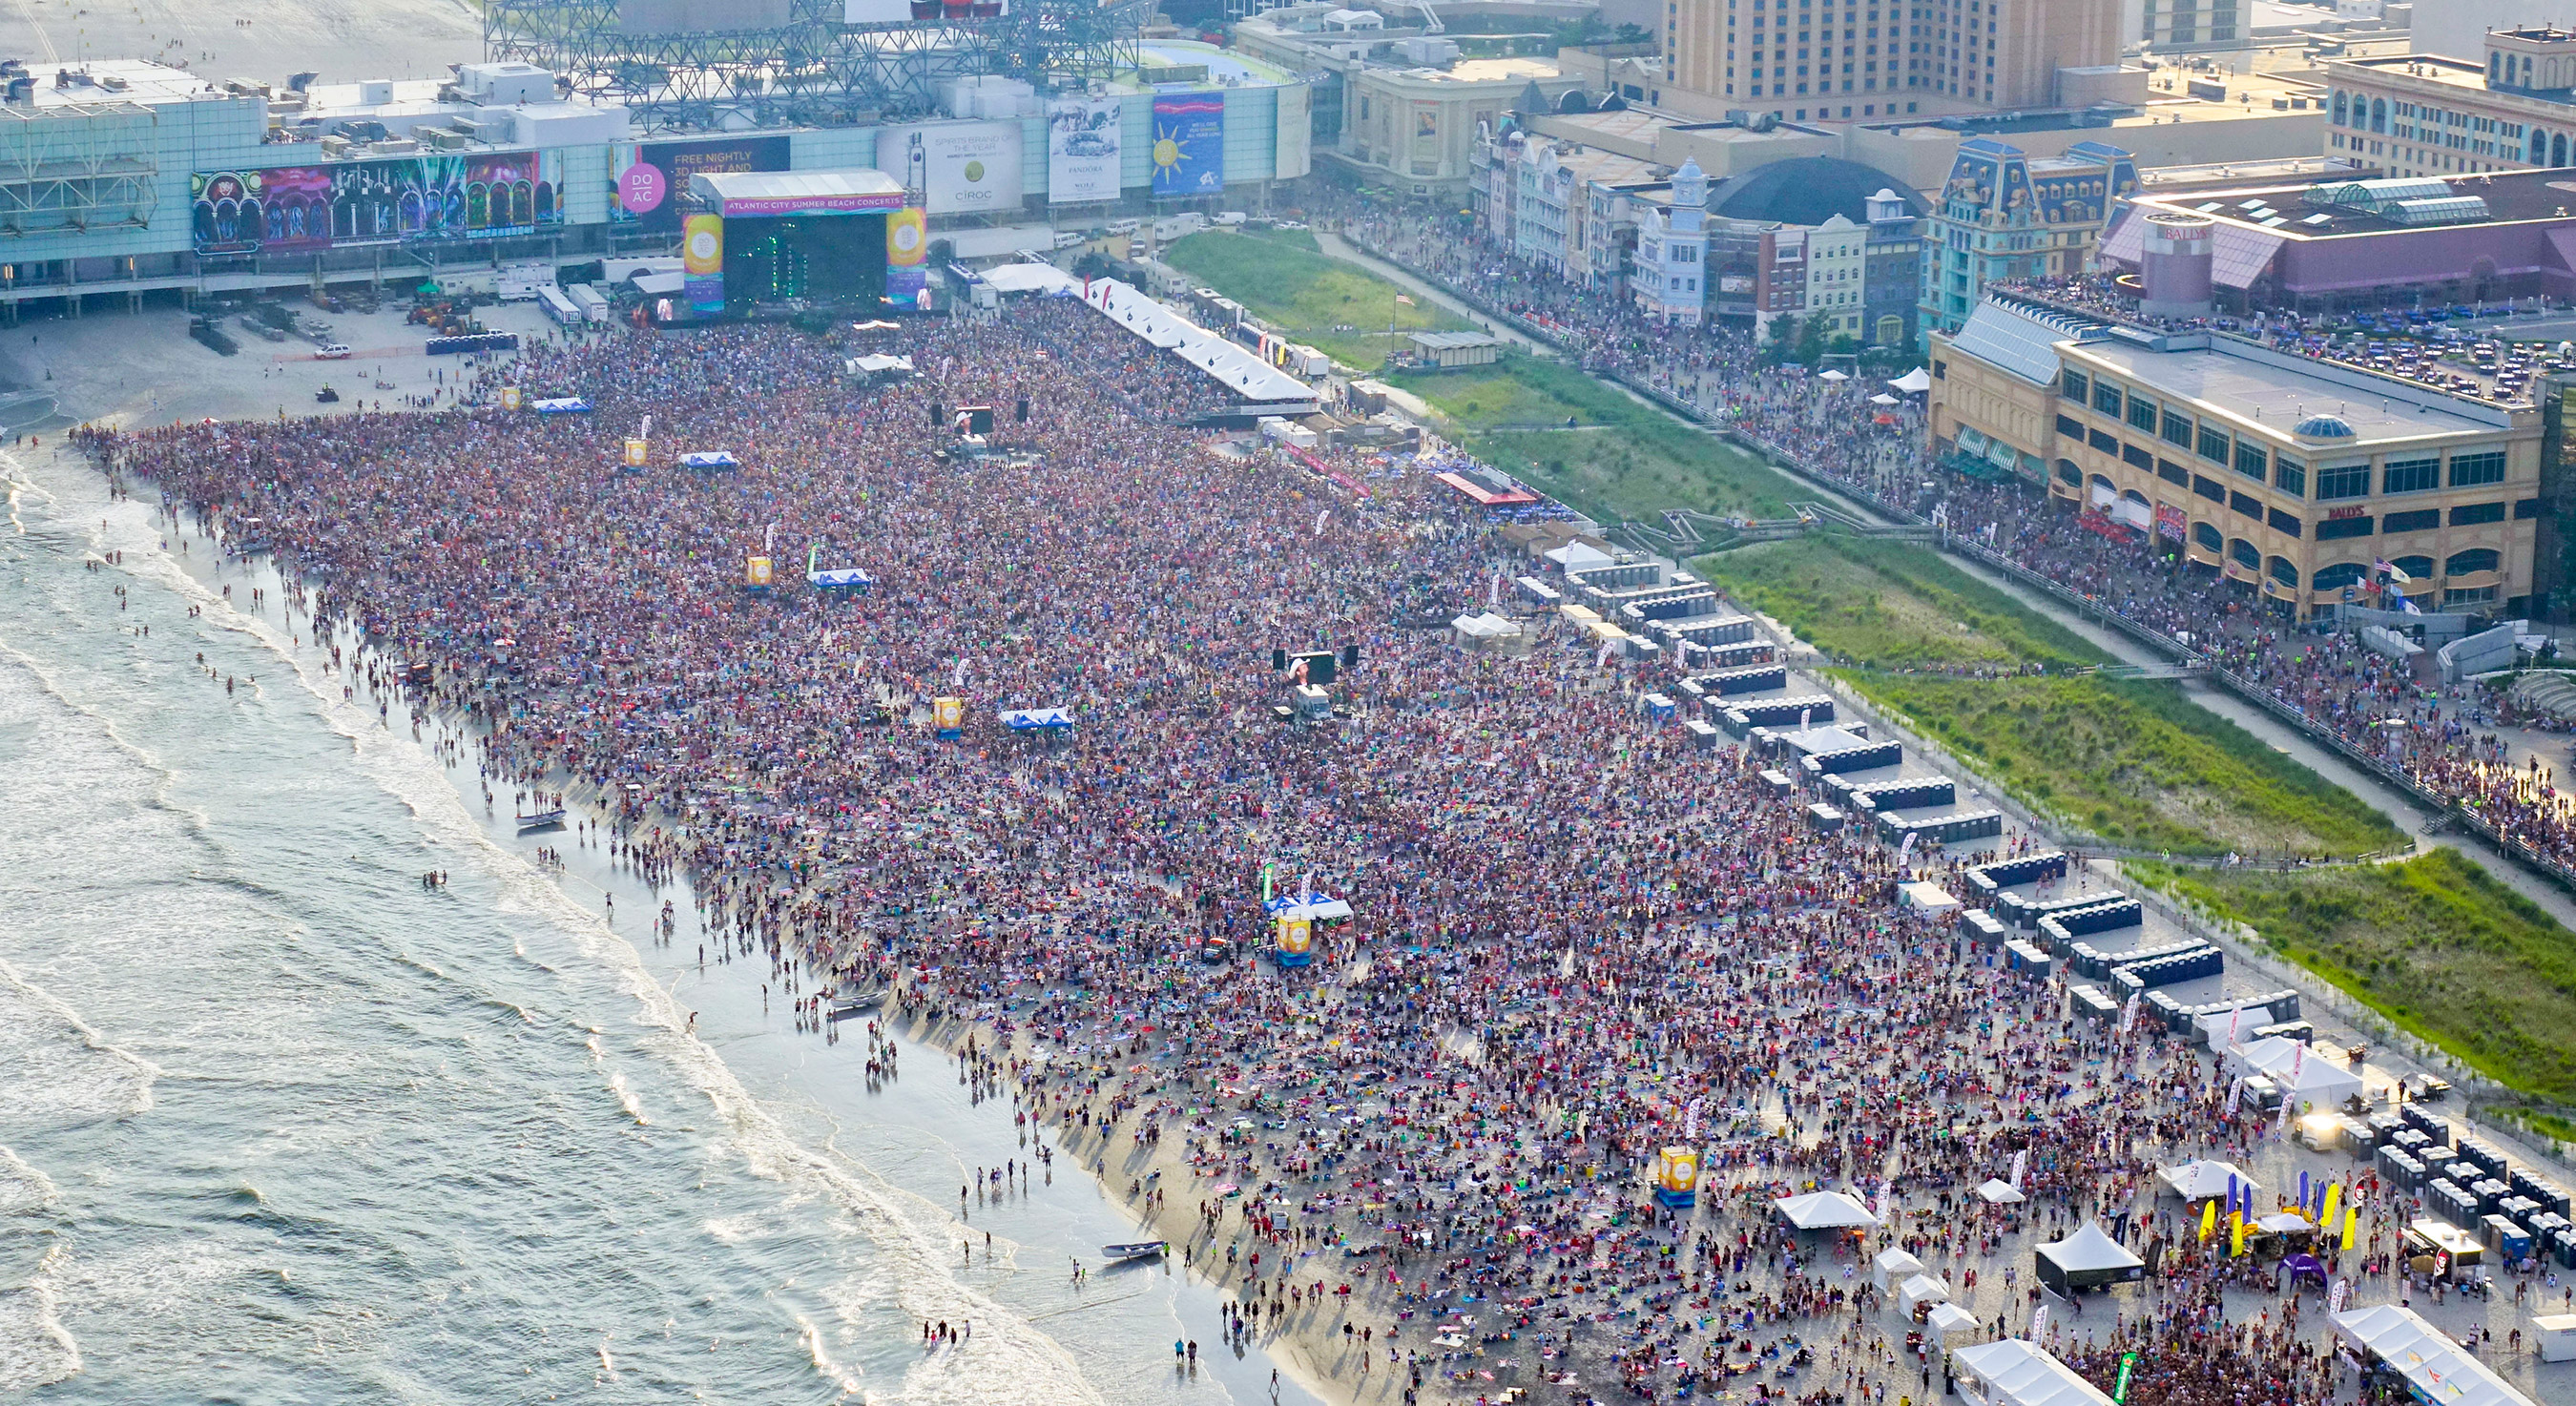 Atlantic City S Free Beaches Are Packed For The Beach Concert With Blake Shelton